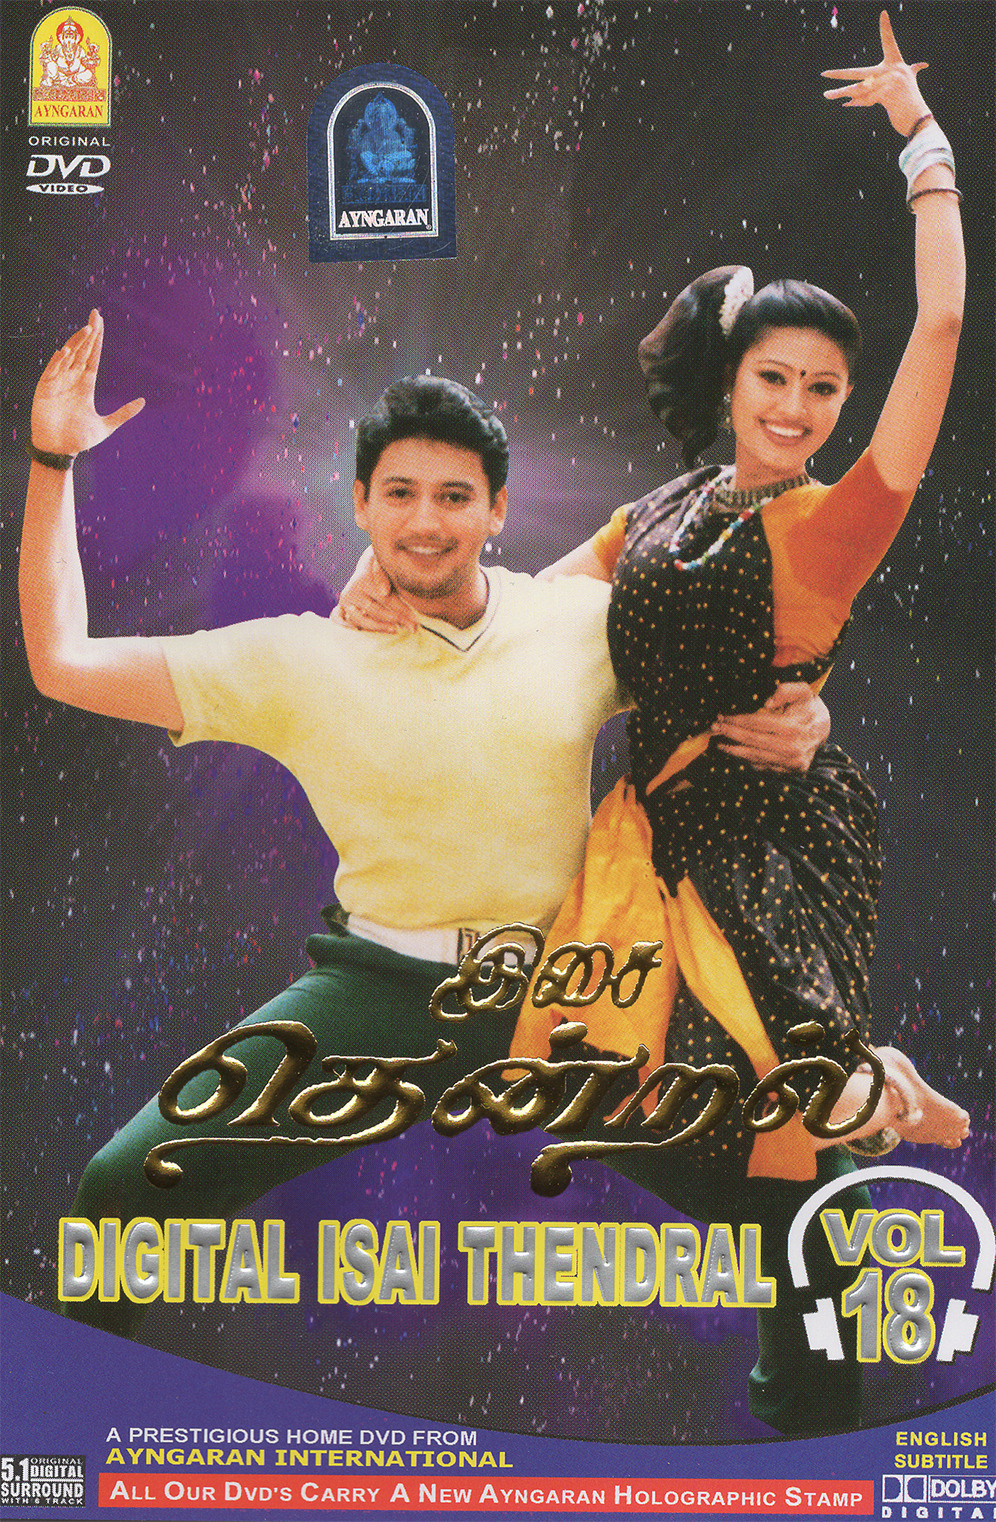 Digital Isai Thendral Vol 18